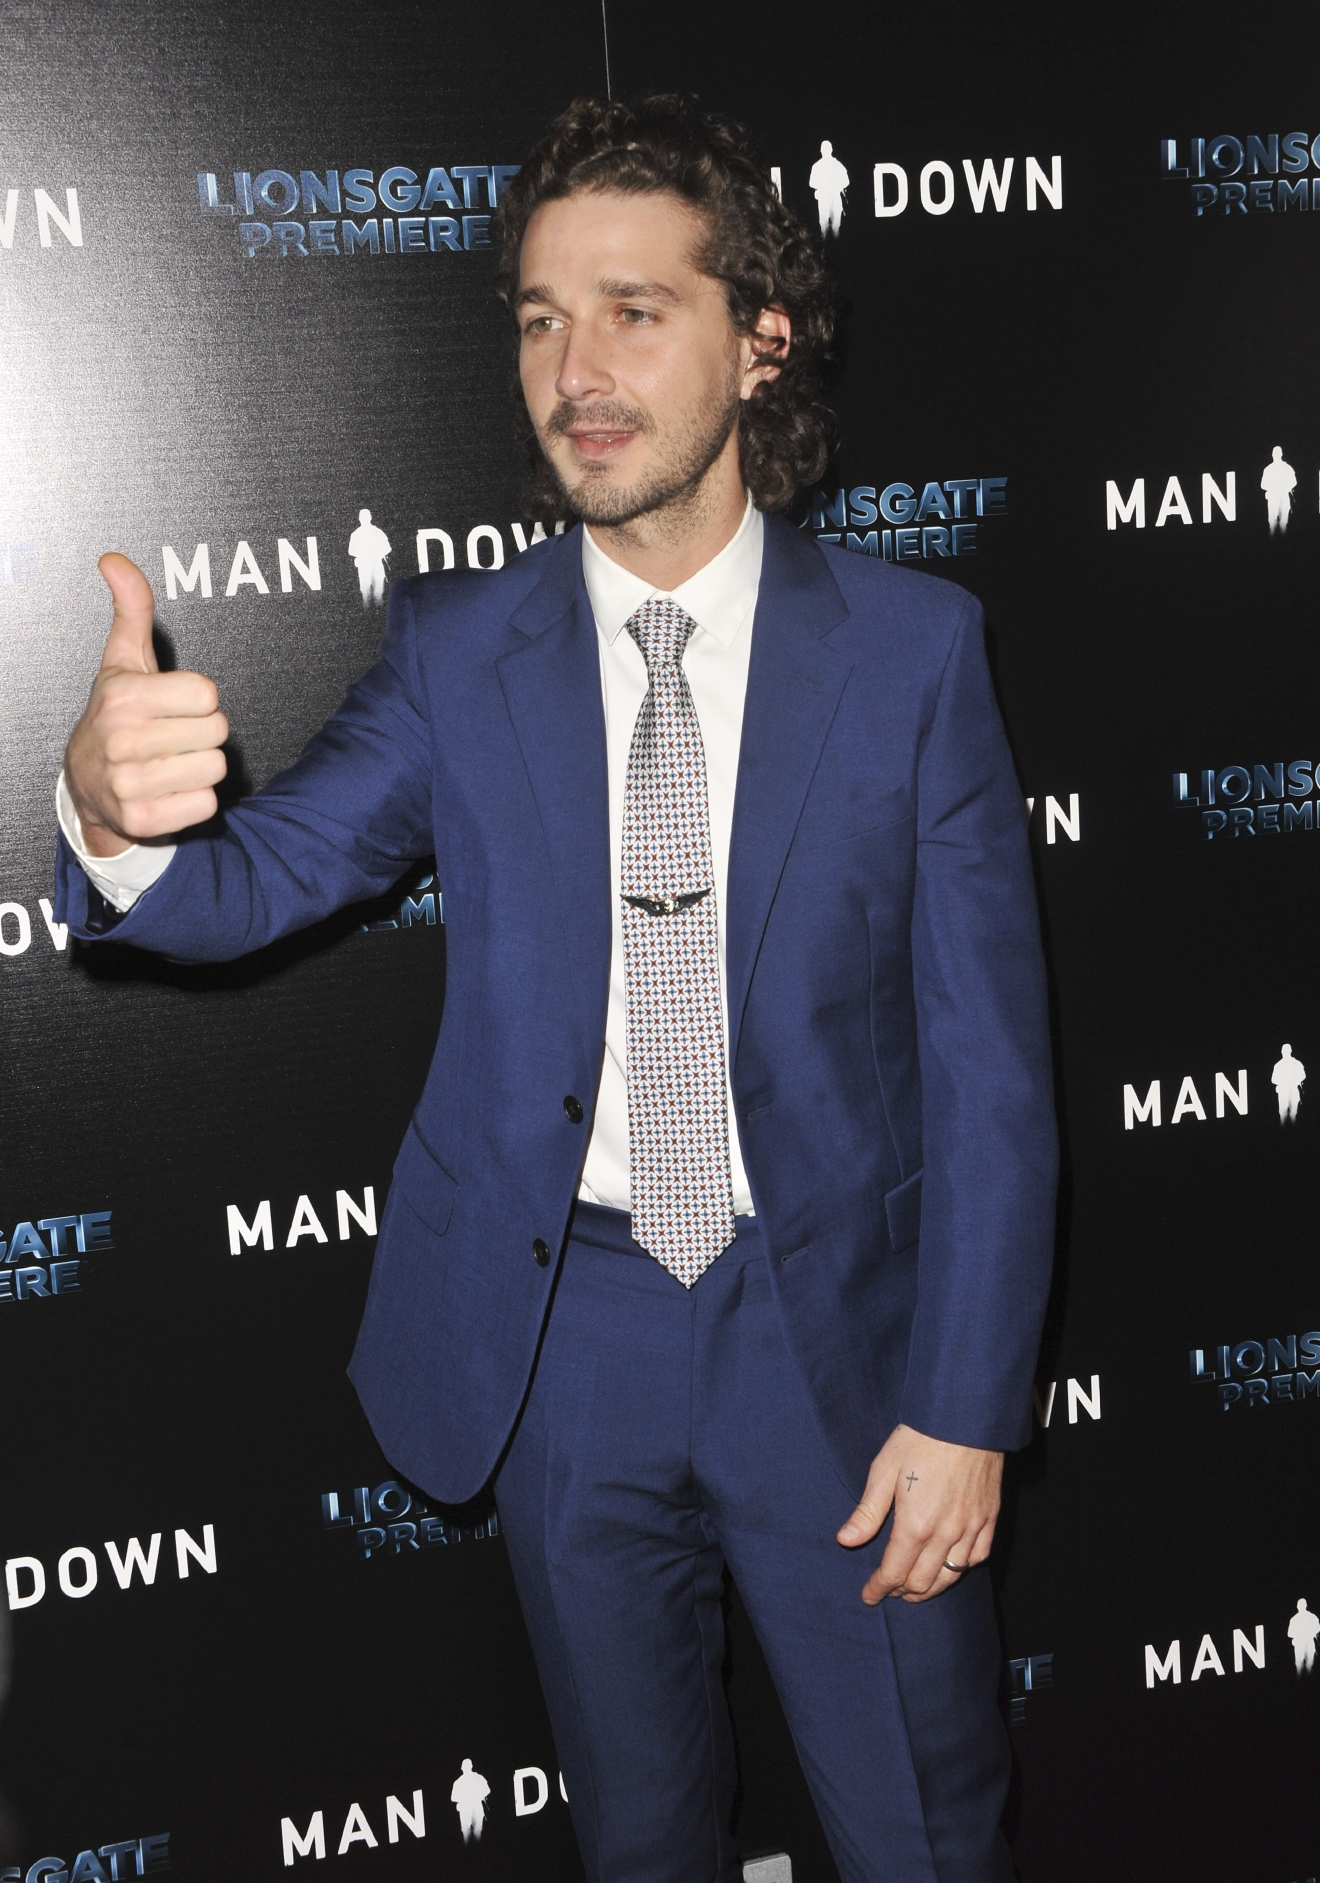 Film Premiere of 'Man Down' - Arrivals                                    Featuring: Shia LaBeouf                  Where: Los Angeles, California, United States                  When: 01 Dec 2016                  Credit: Apega/WENN.com